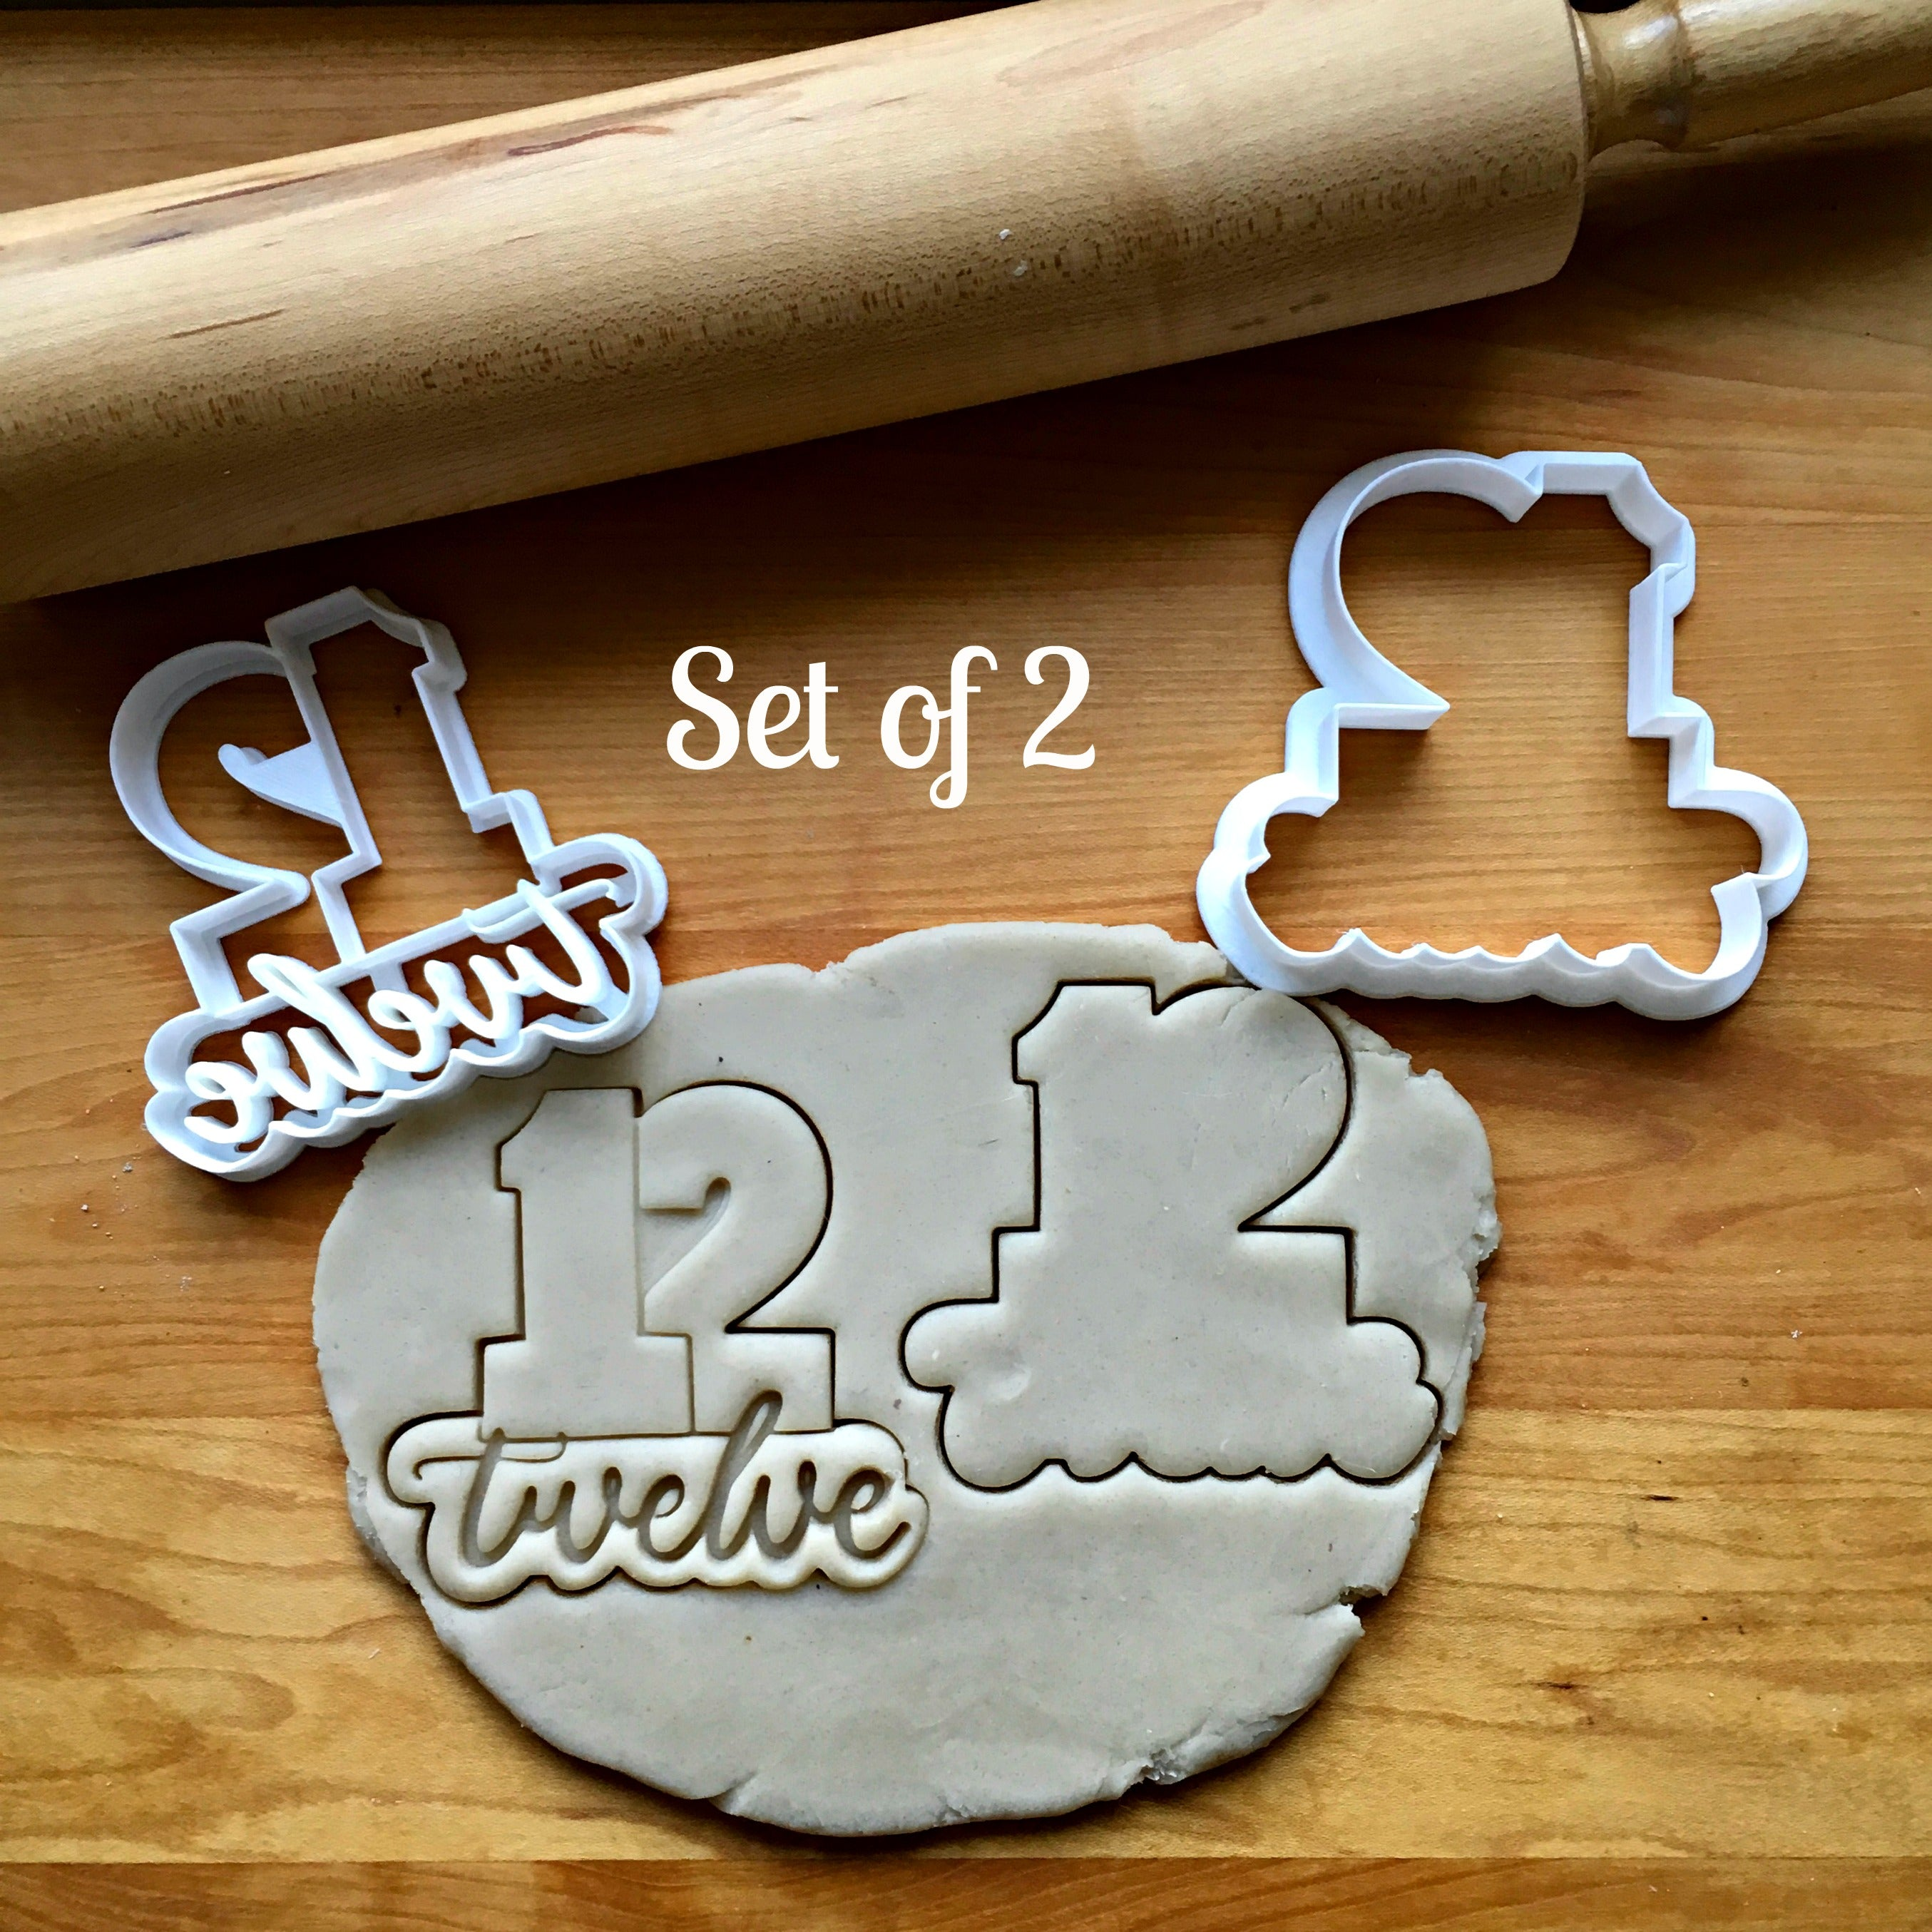 Set of 2 Lettered Number 12 Cookie Cutters/Dishwasher Safe